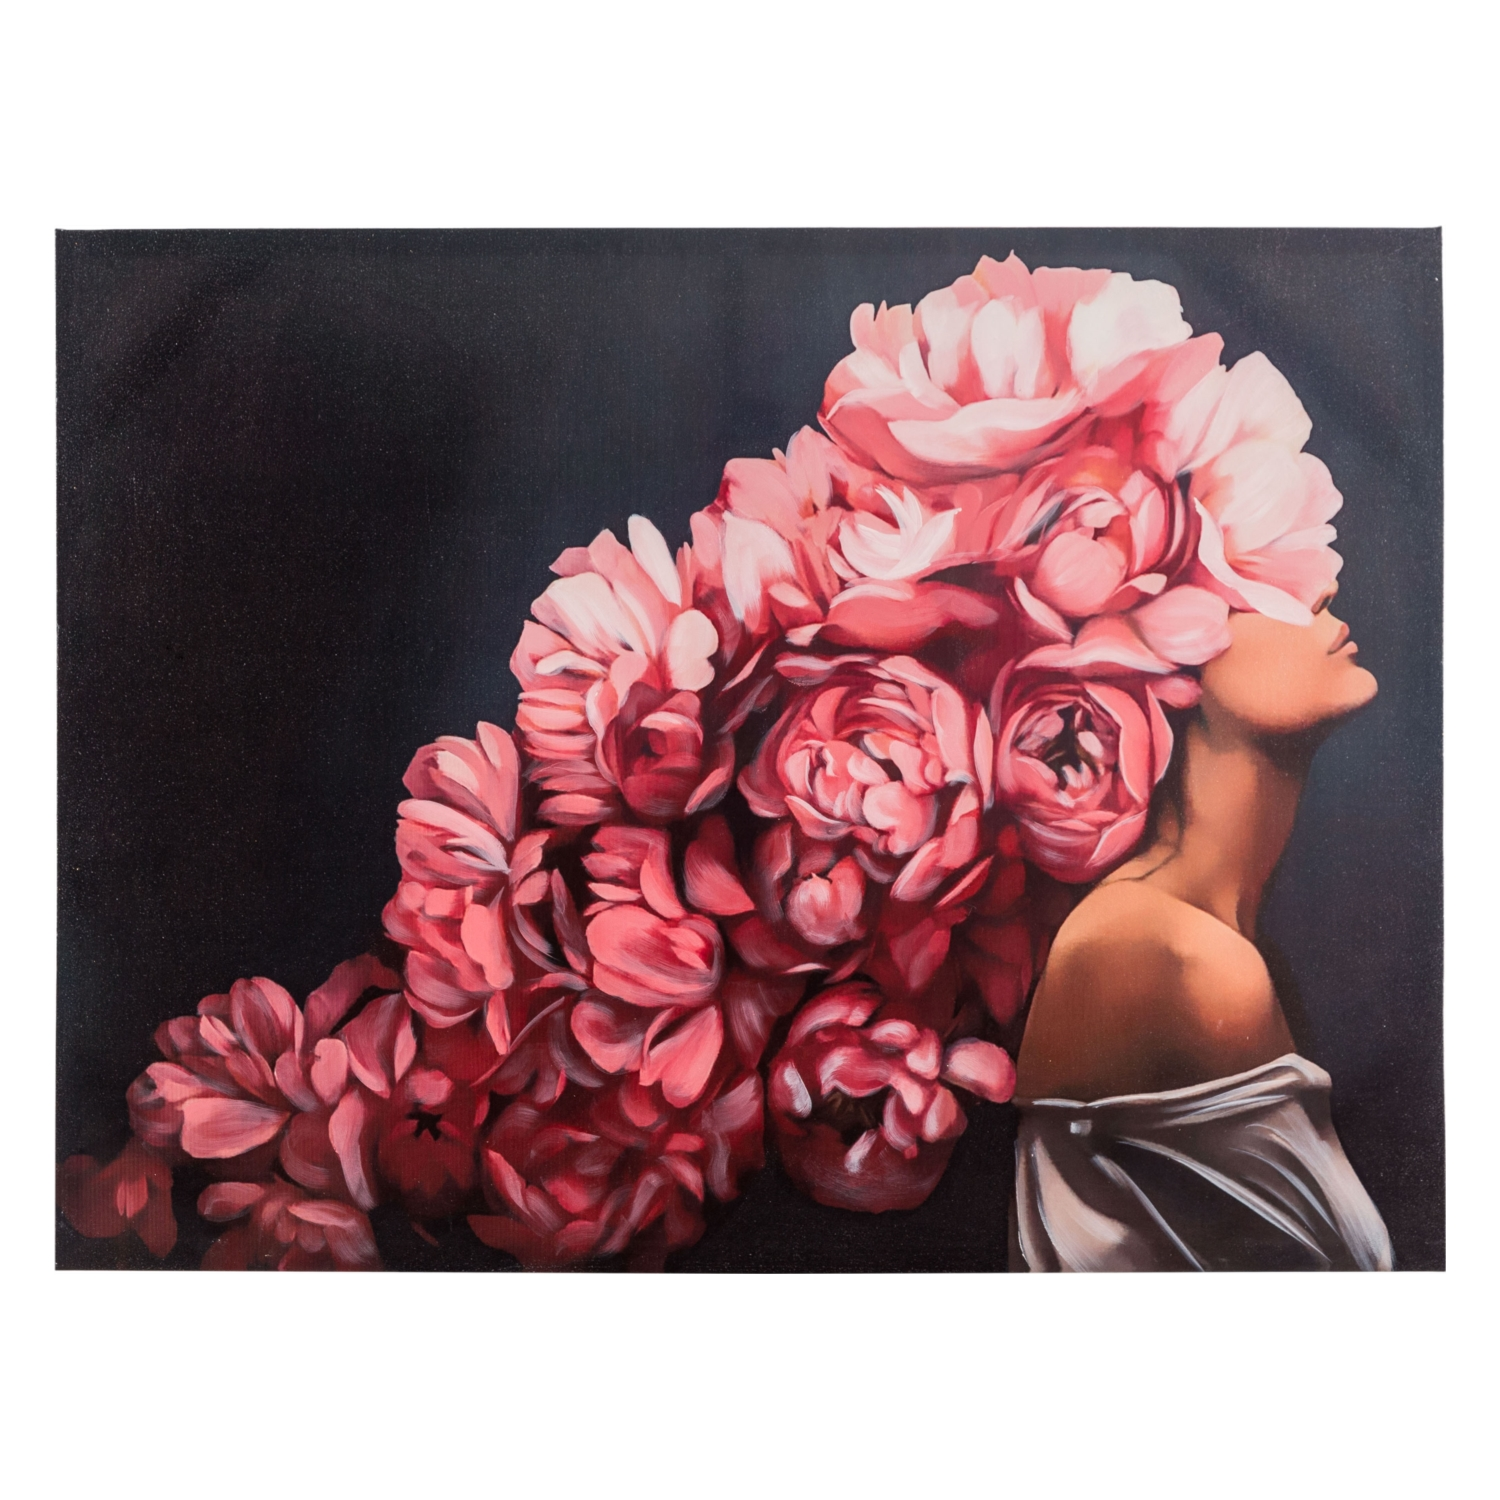 FLOWER LADY PINK I TABLO 90X120 CM